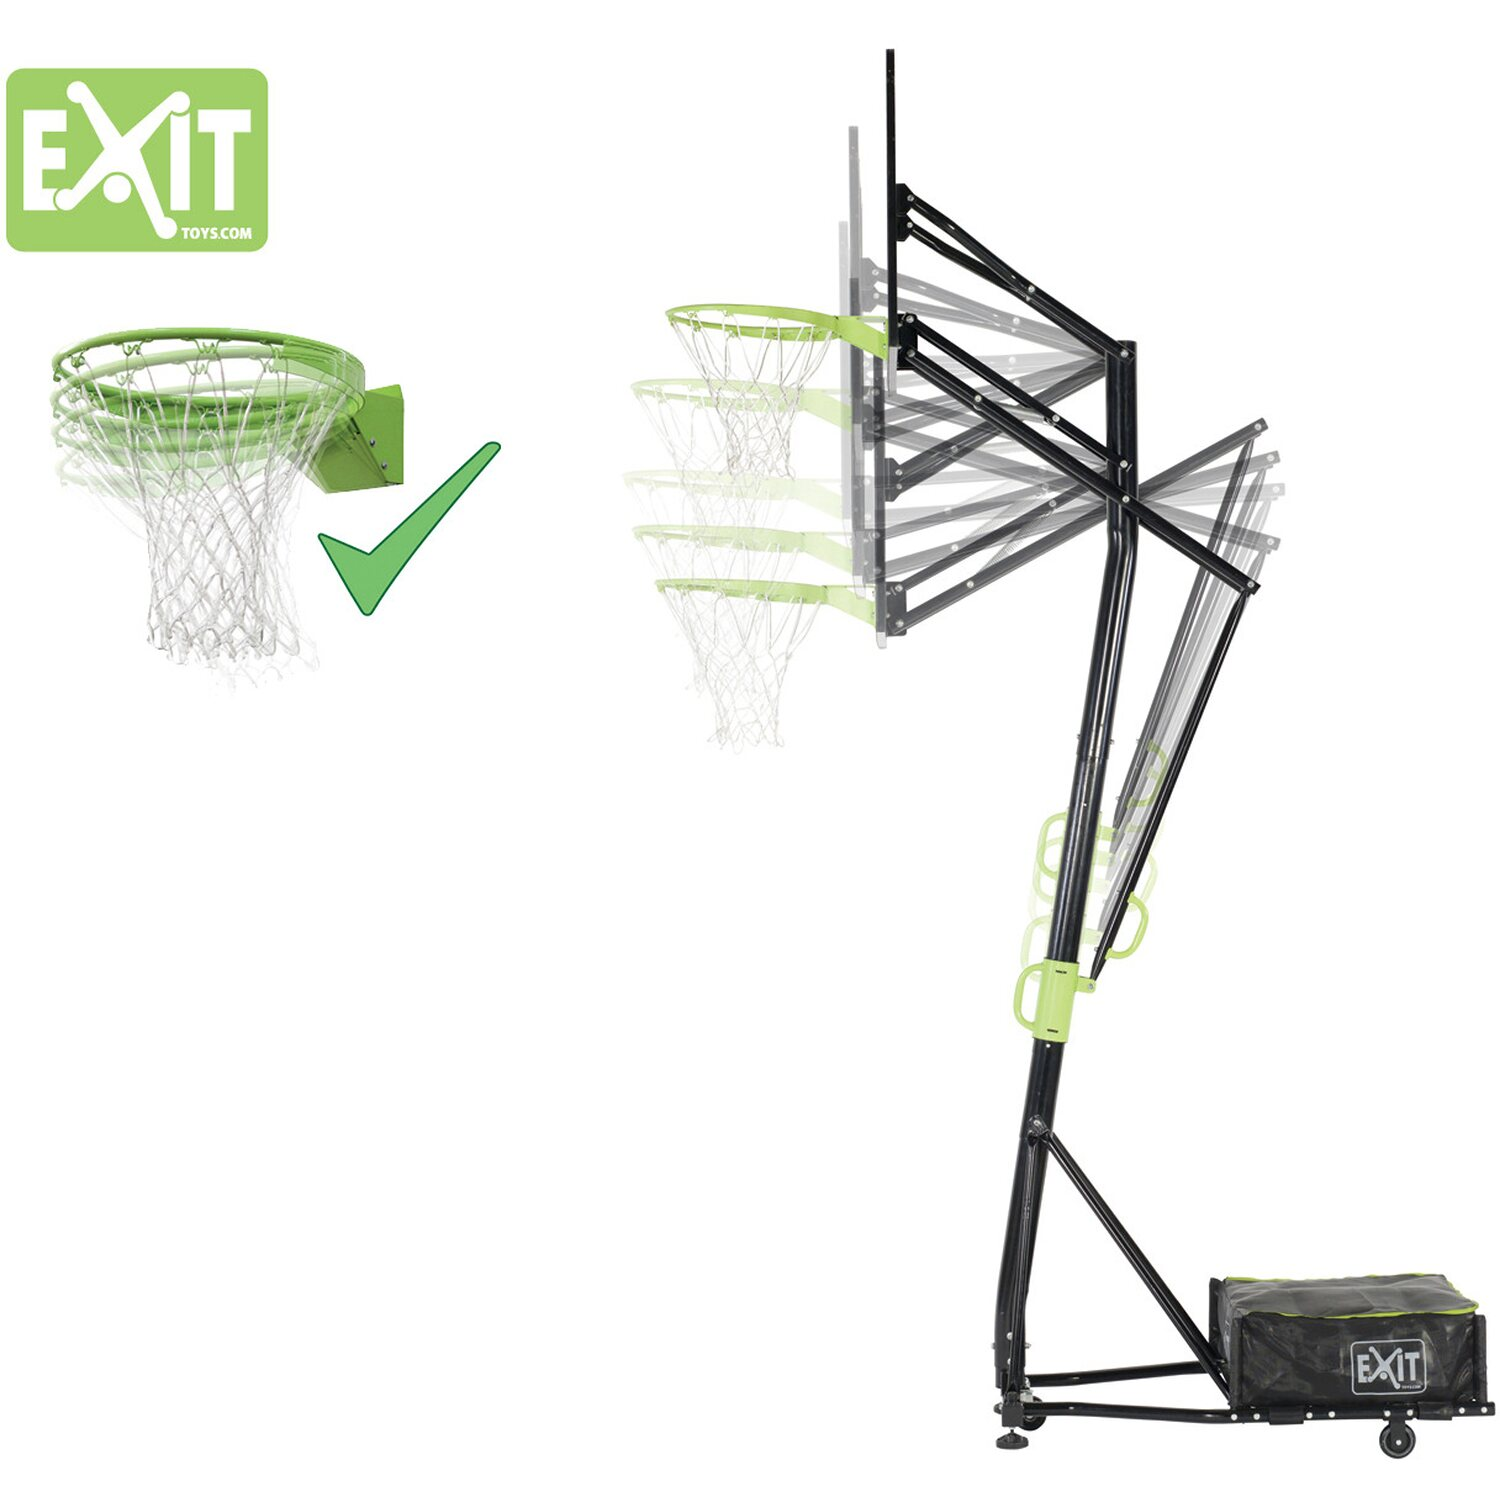 Top Exit Basketball-Korb Galaxy Portable Basket mit Dunkring kaufen BA44